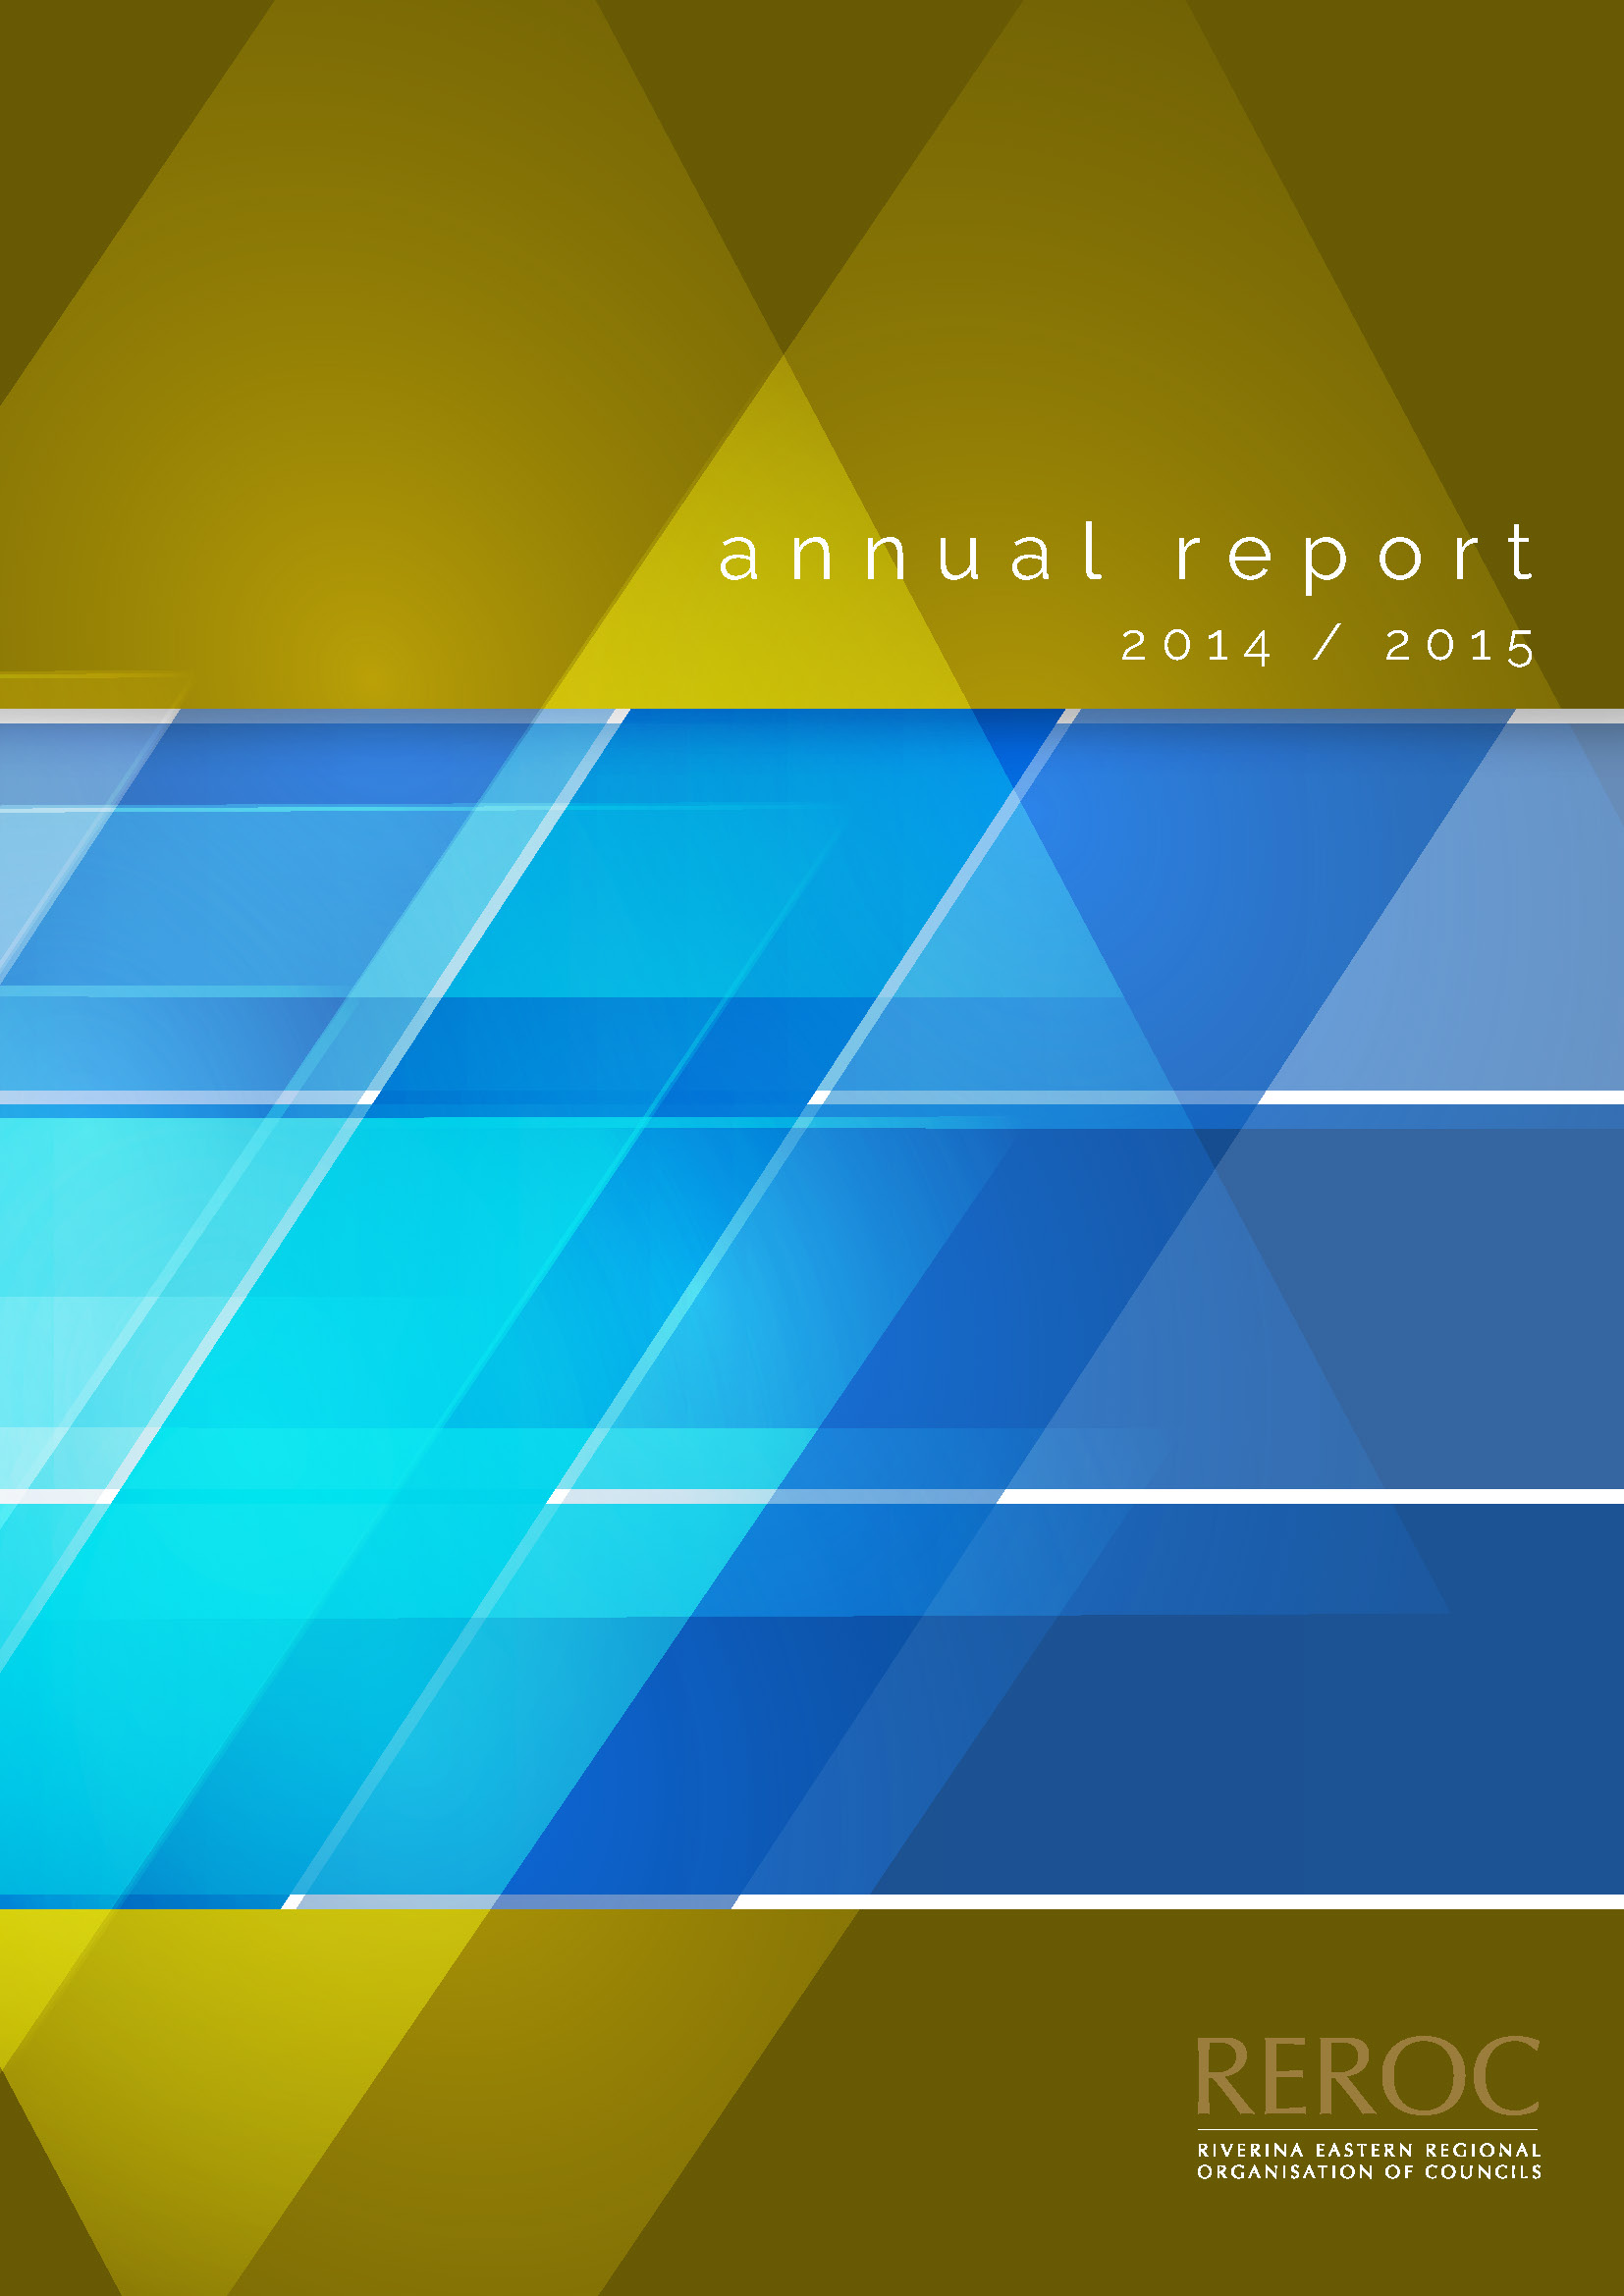 REROC+Annual+Report_2015_Page_01.jpg